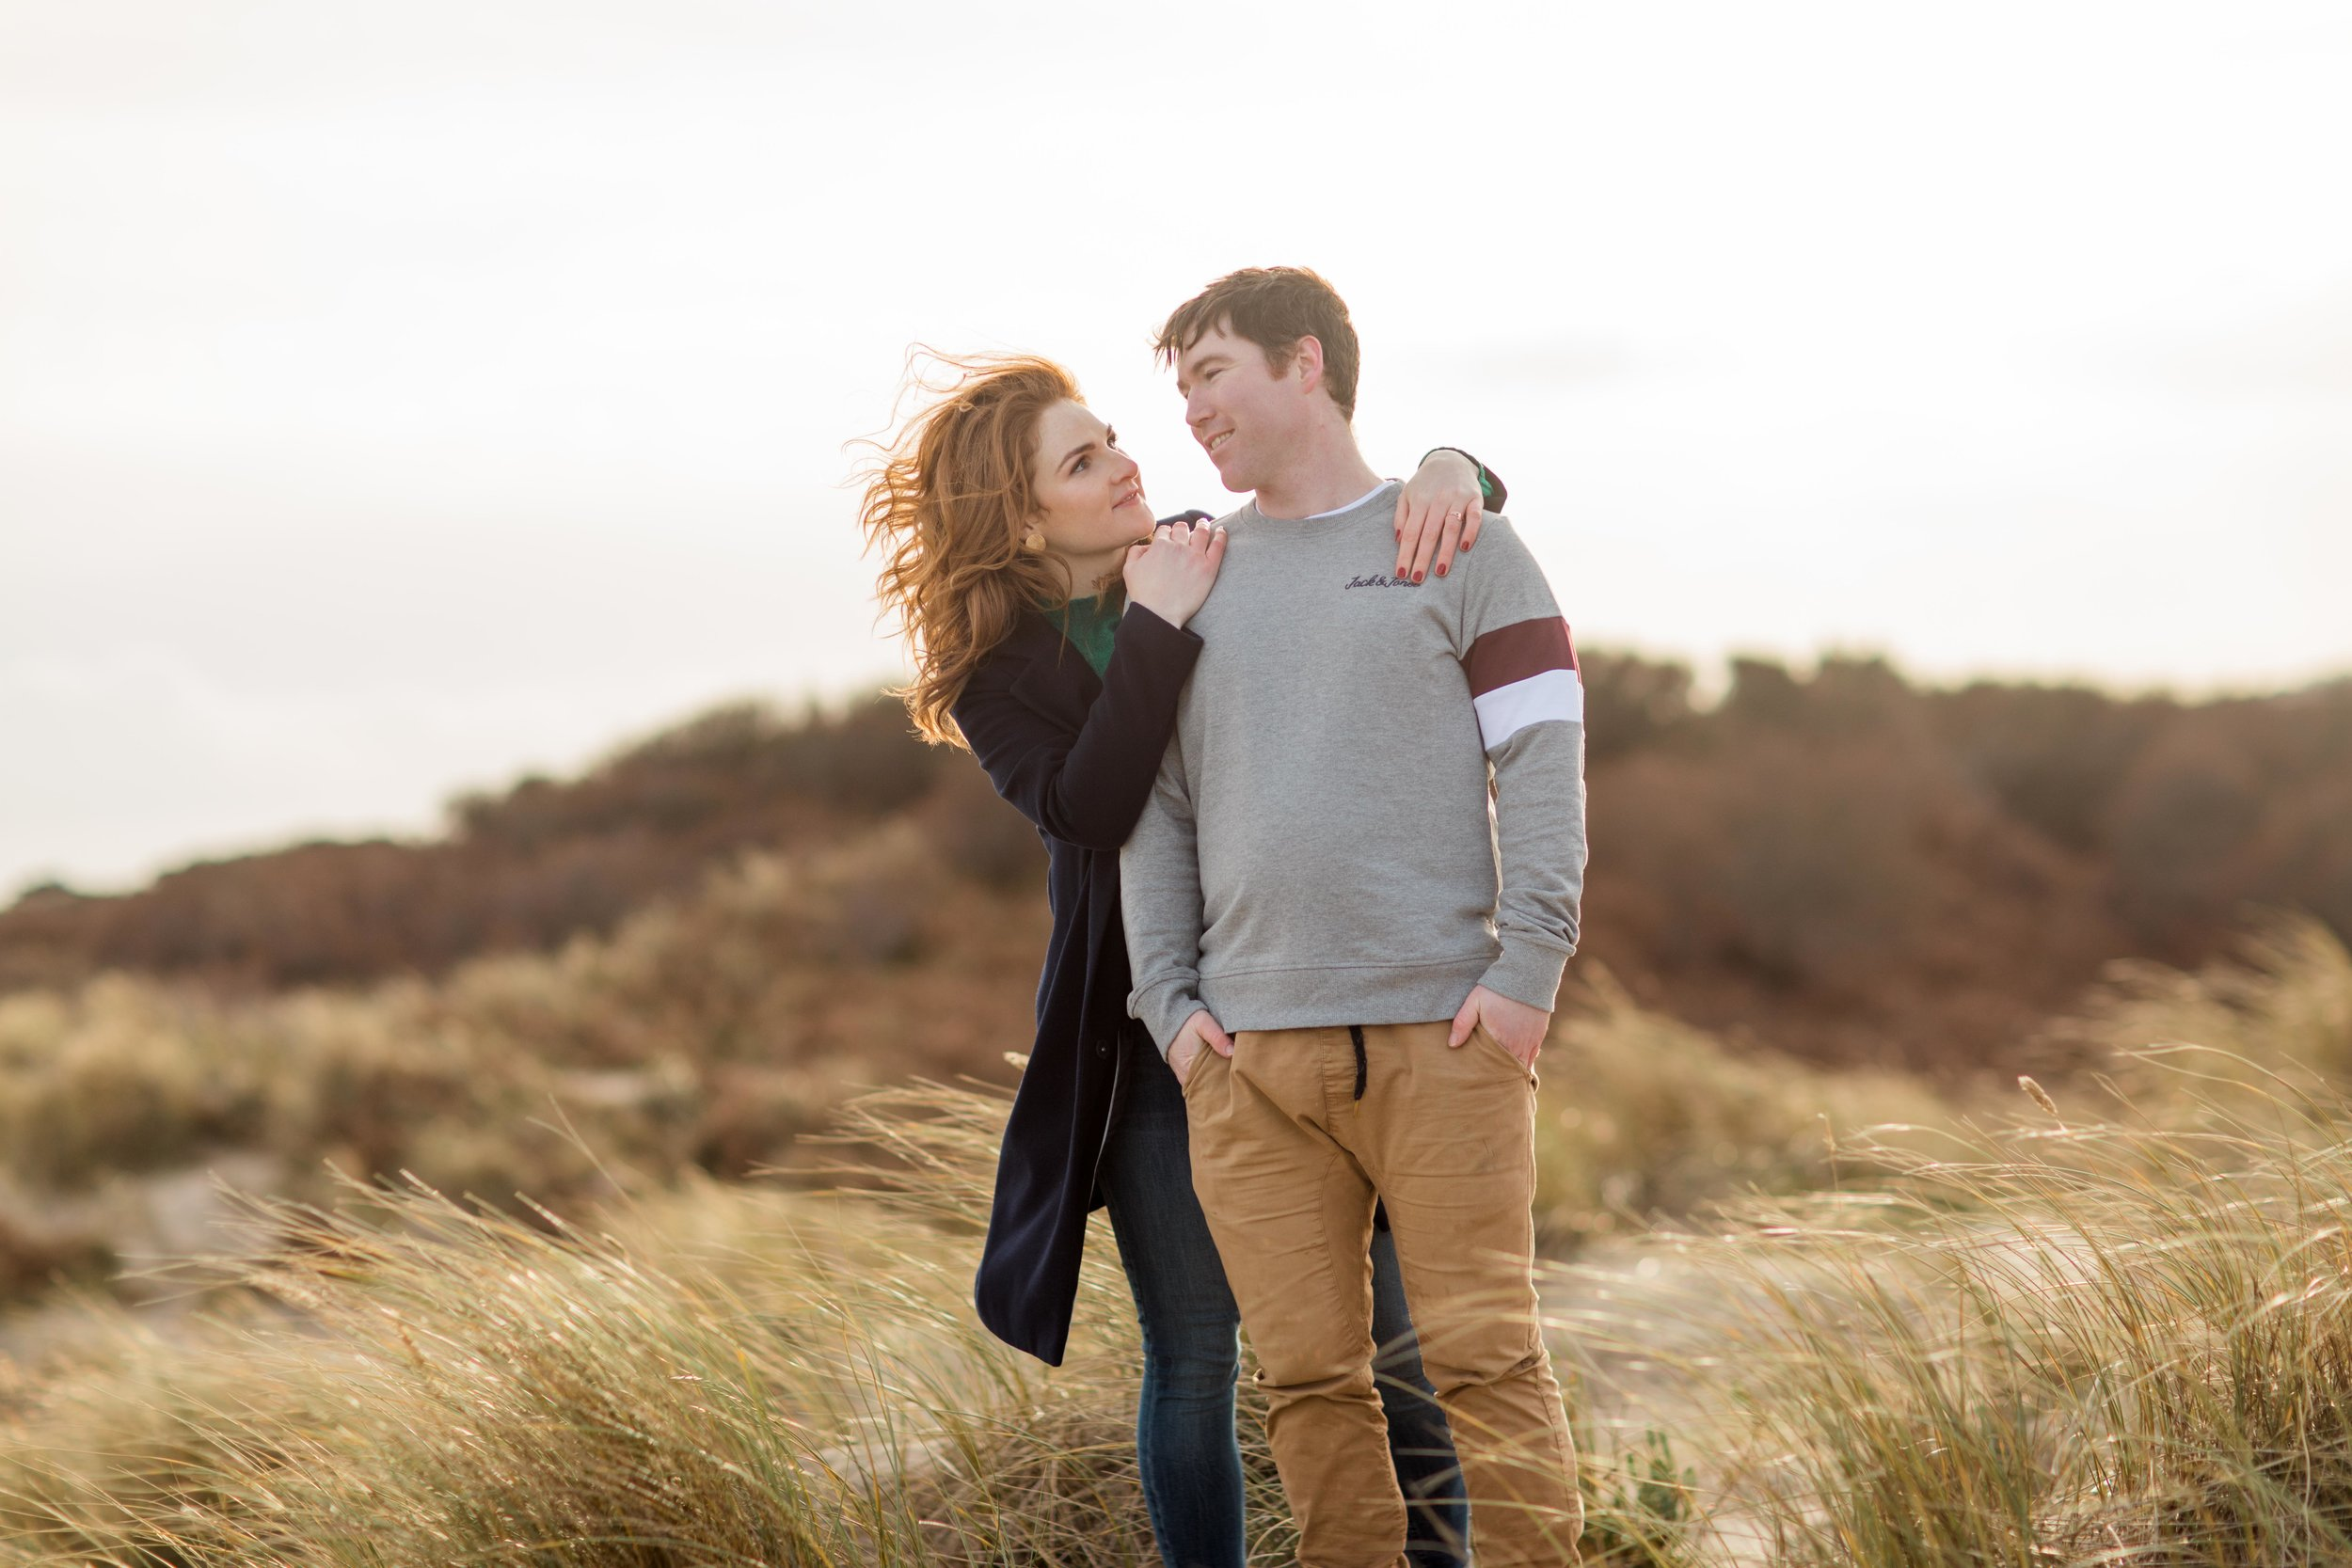 a couple posing for their engagement session on a sandy dune in brittas bay during a sunset with wind blowing through her red hair while she is hugging her fiance